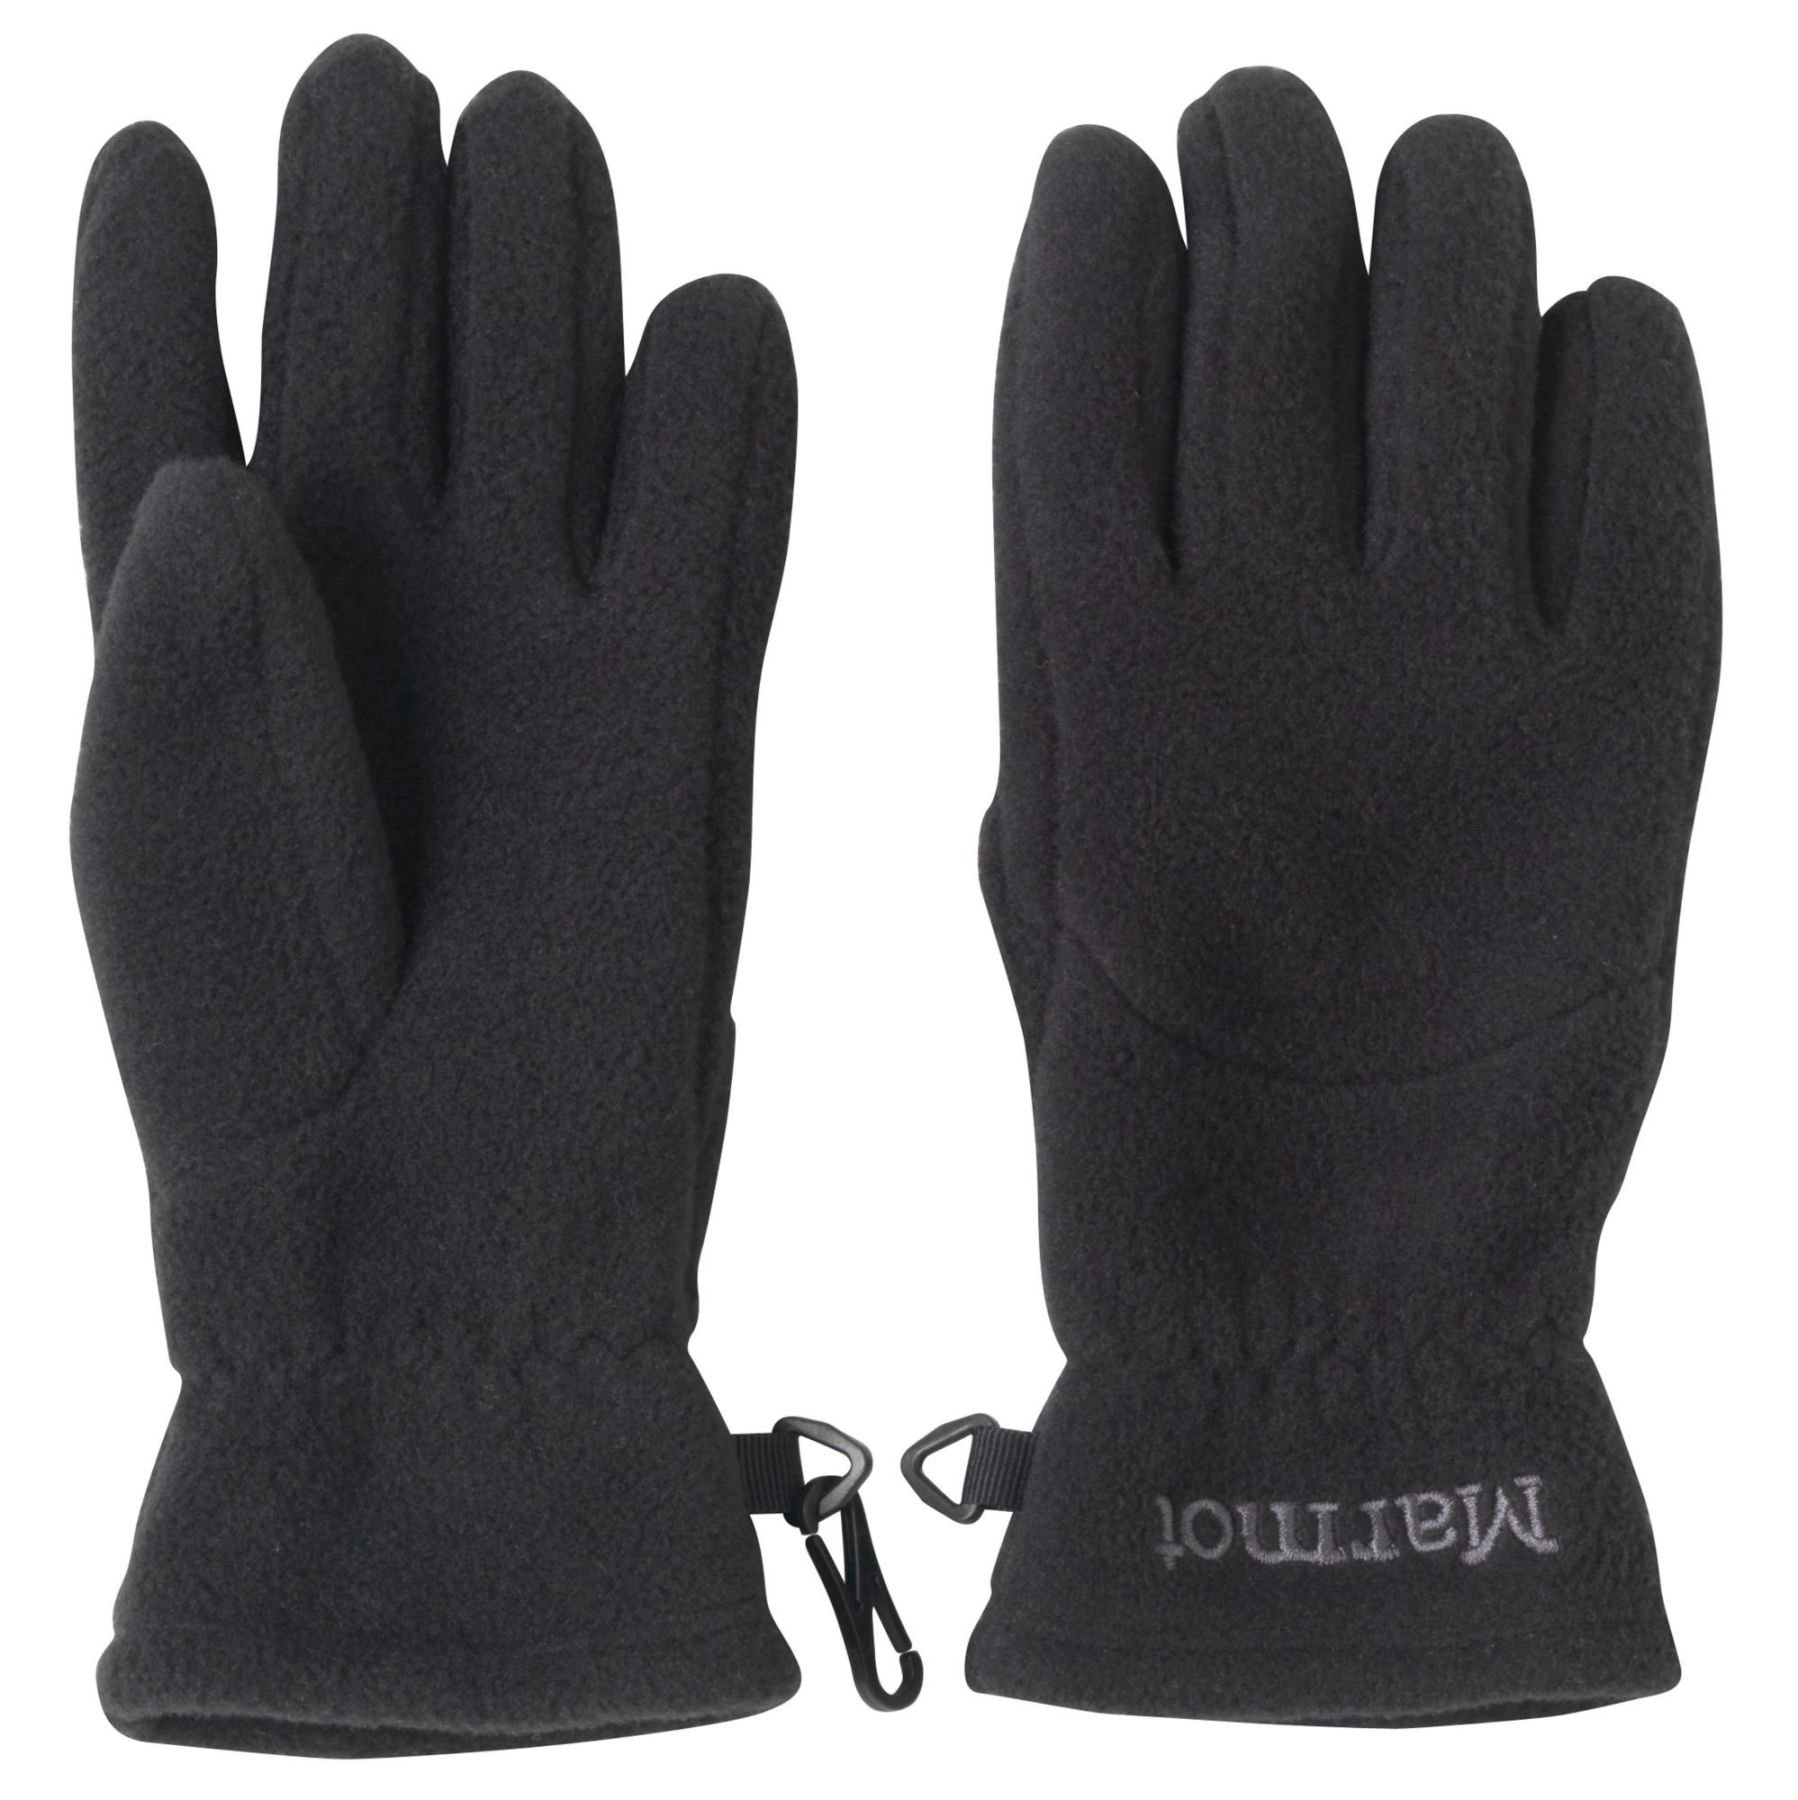 Перчатки унисекс Marmot - Kid's Fleece Glove Black, XS (MRT 1507.001-XS)